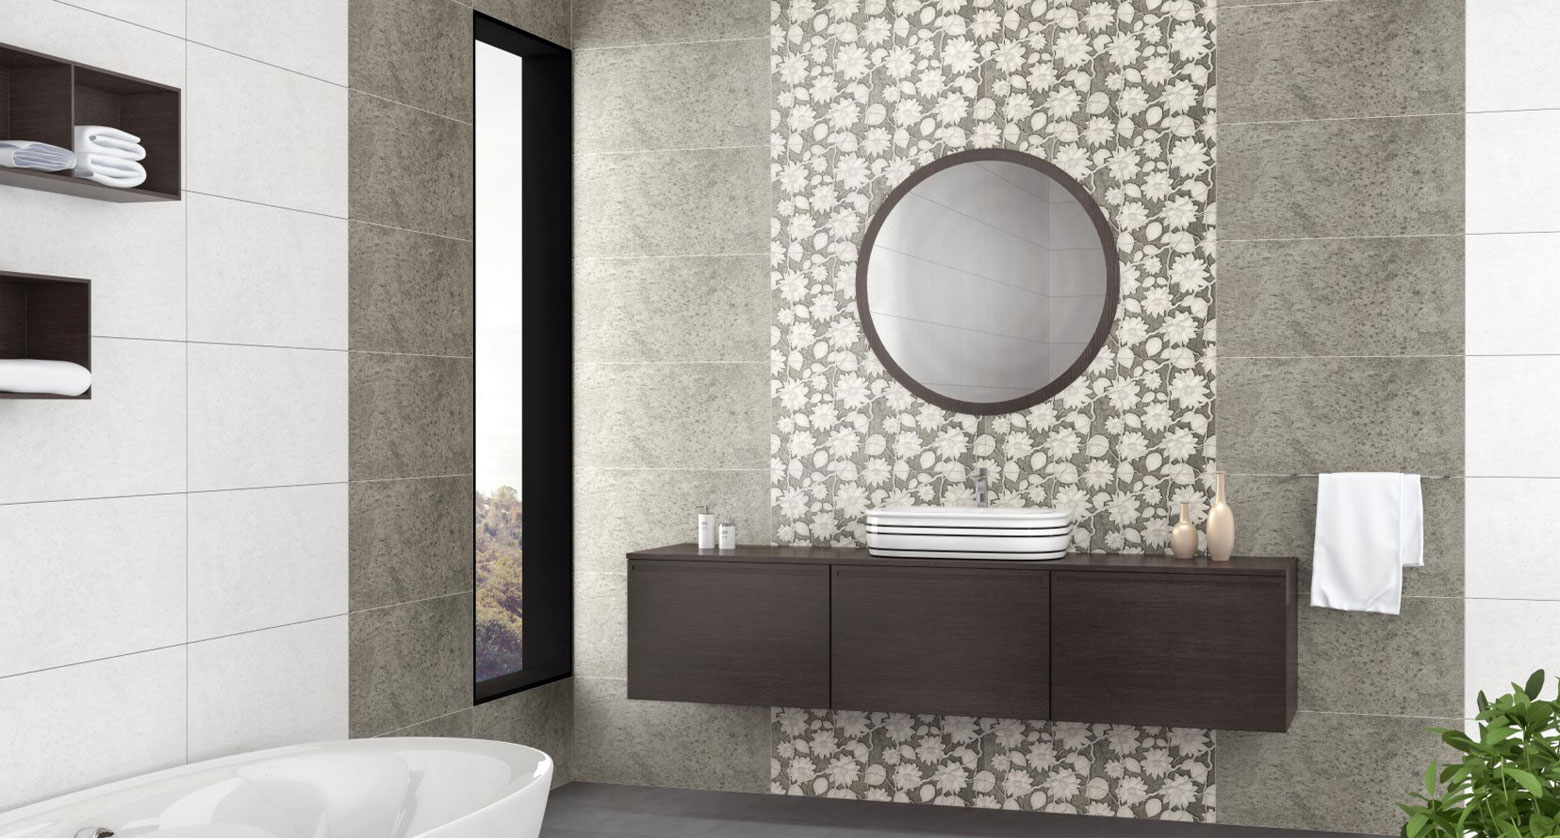 BATHROOM | Porcelain Tiles,Floor Tiles,Wall Tiles - Tiles ...